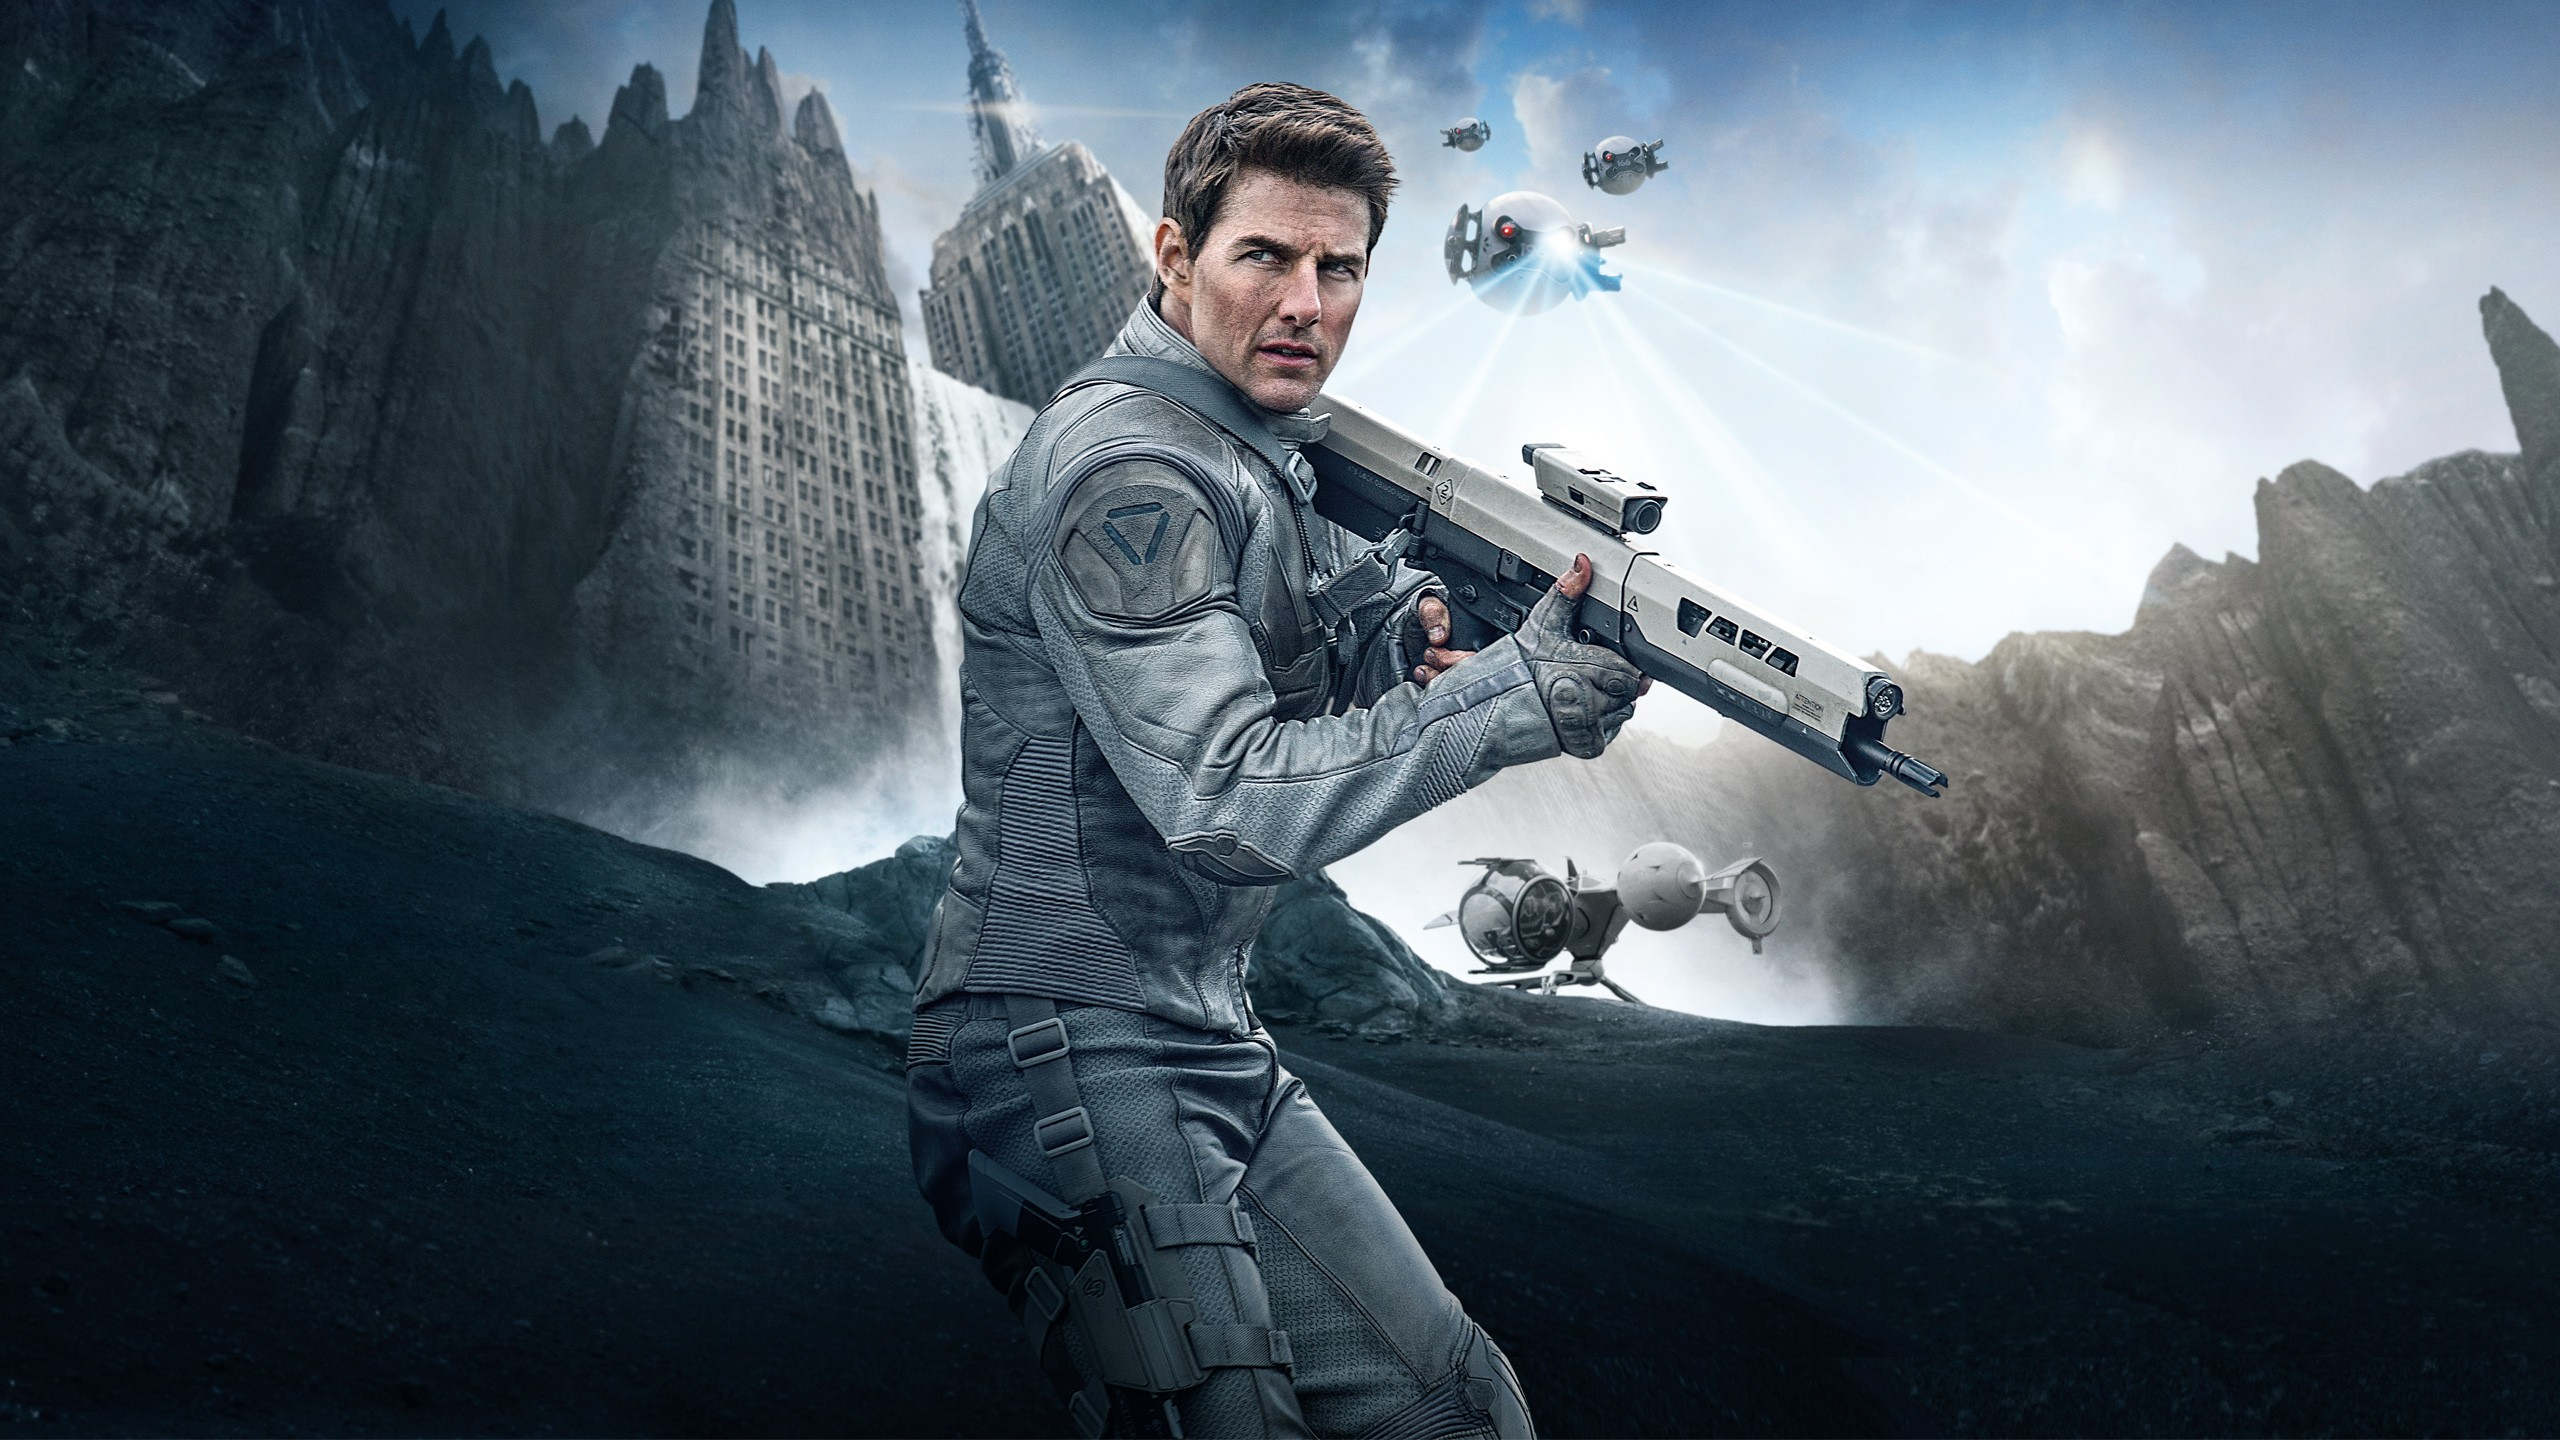 Tom Cruise In Oblivion Wallpapers Hd Wallpapers